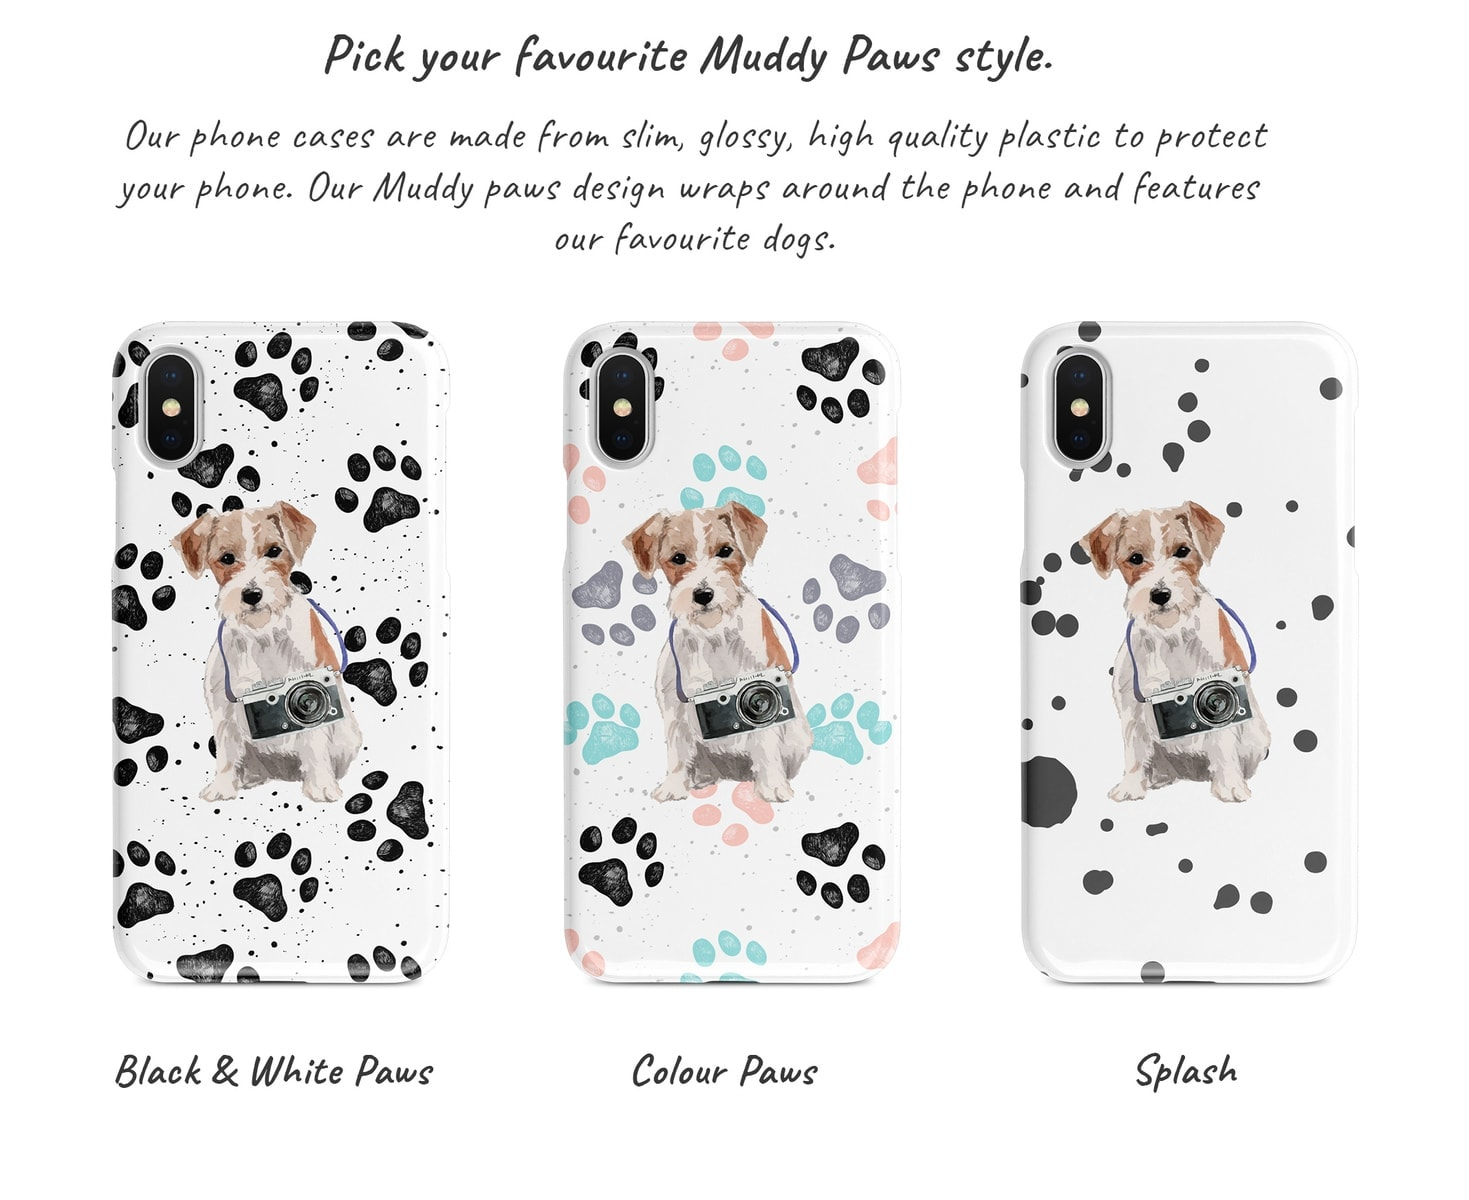 Jack Russel Muddy Paws Phone Case 3 Different Muddy